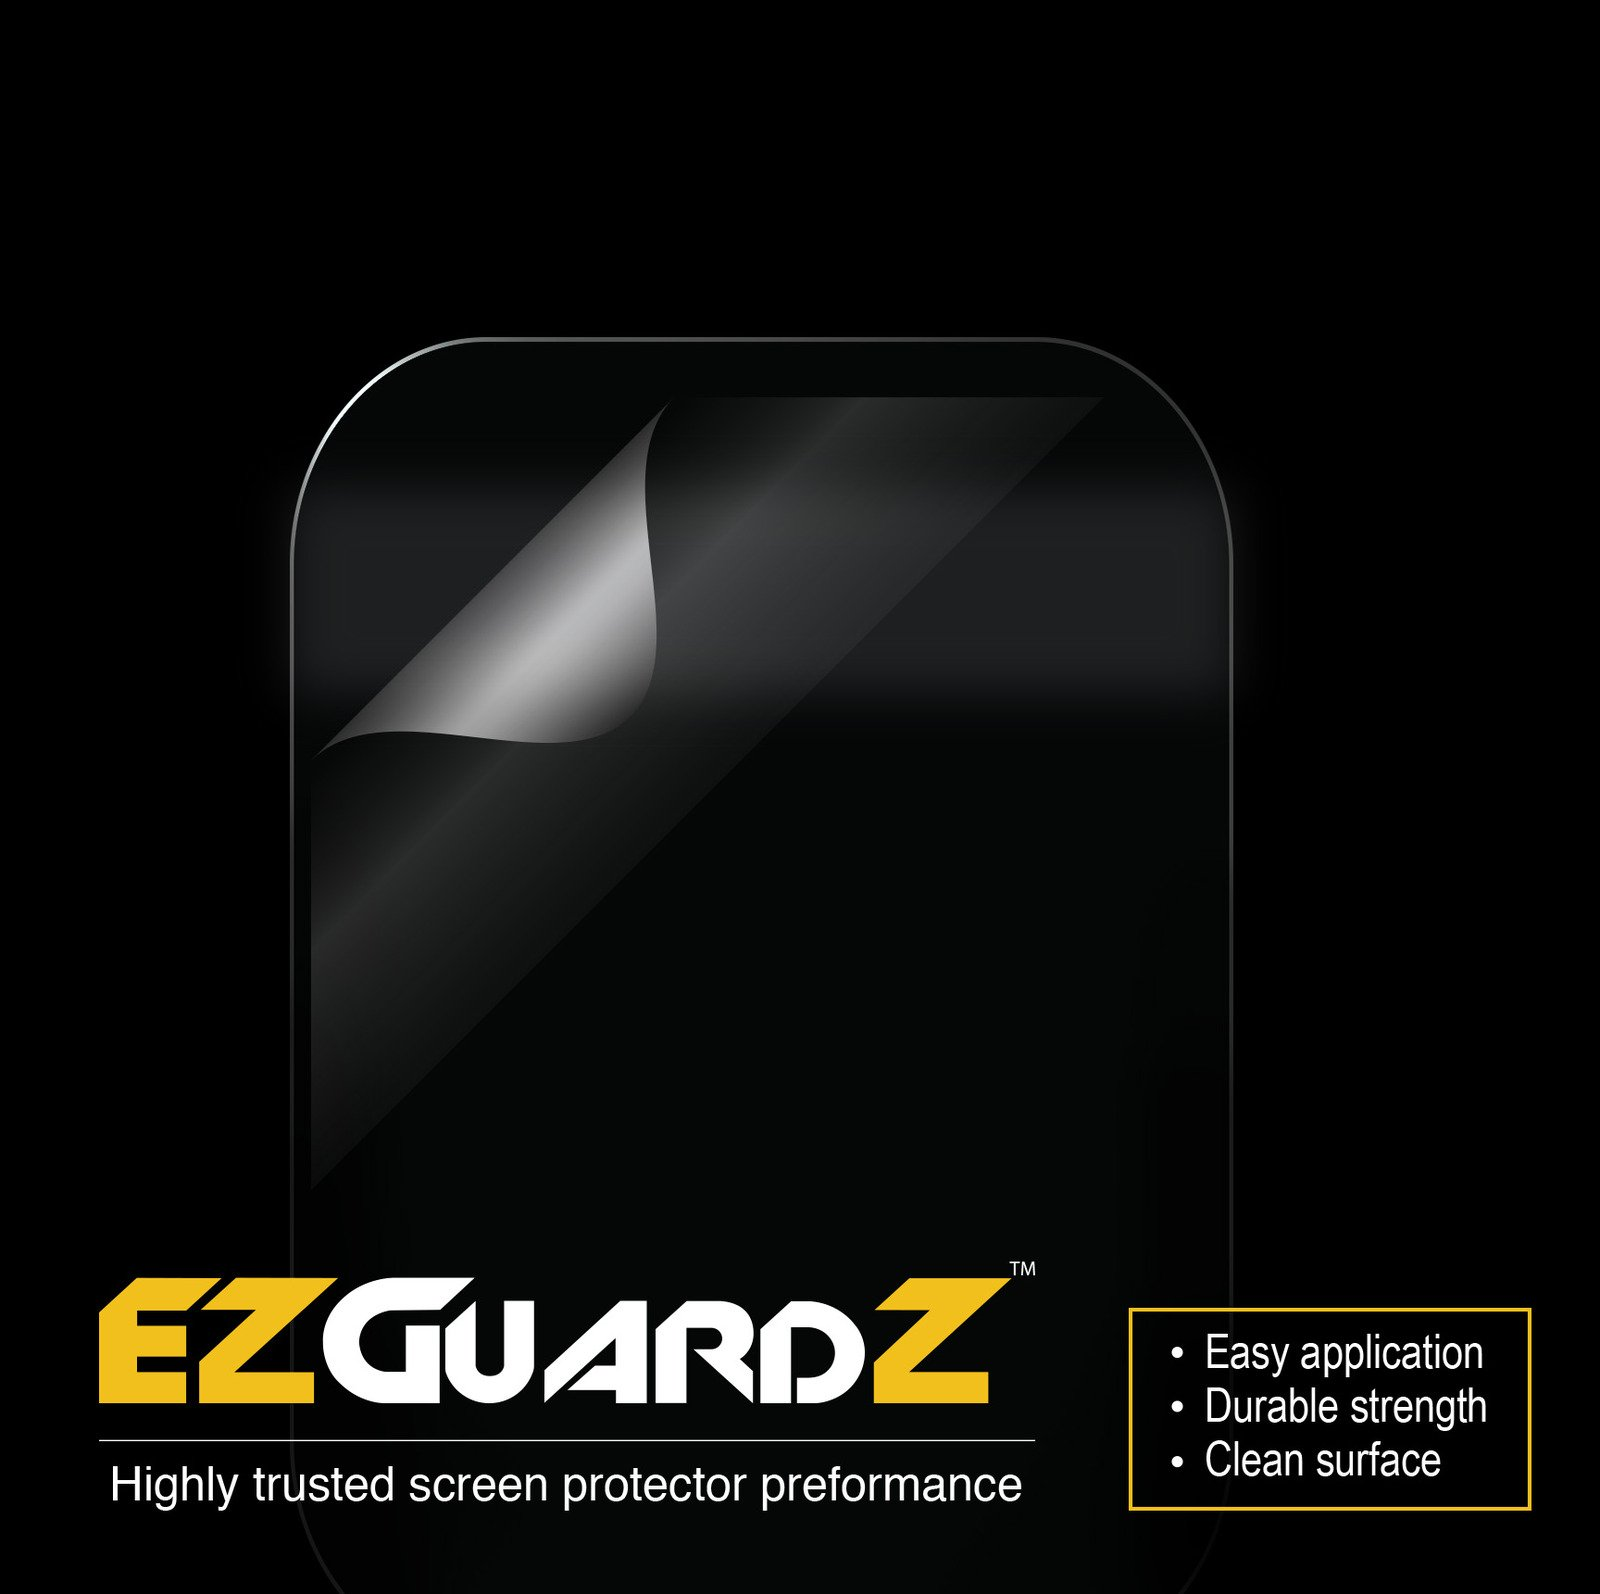 (2-Pack) EZGuardZ Screen Protector for Garmin Nuvi 57LM (Ultra Clear) by EZGuardZ (Image #4)